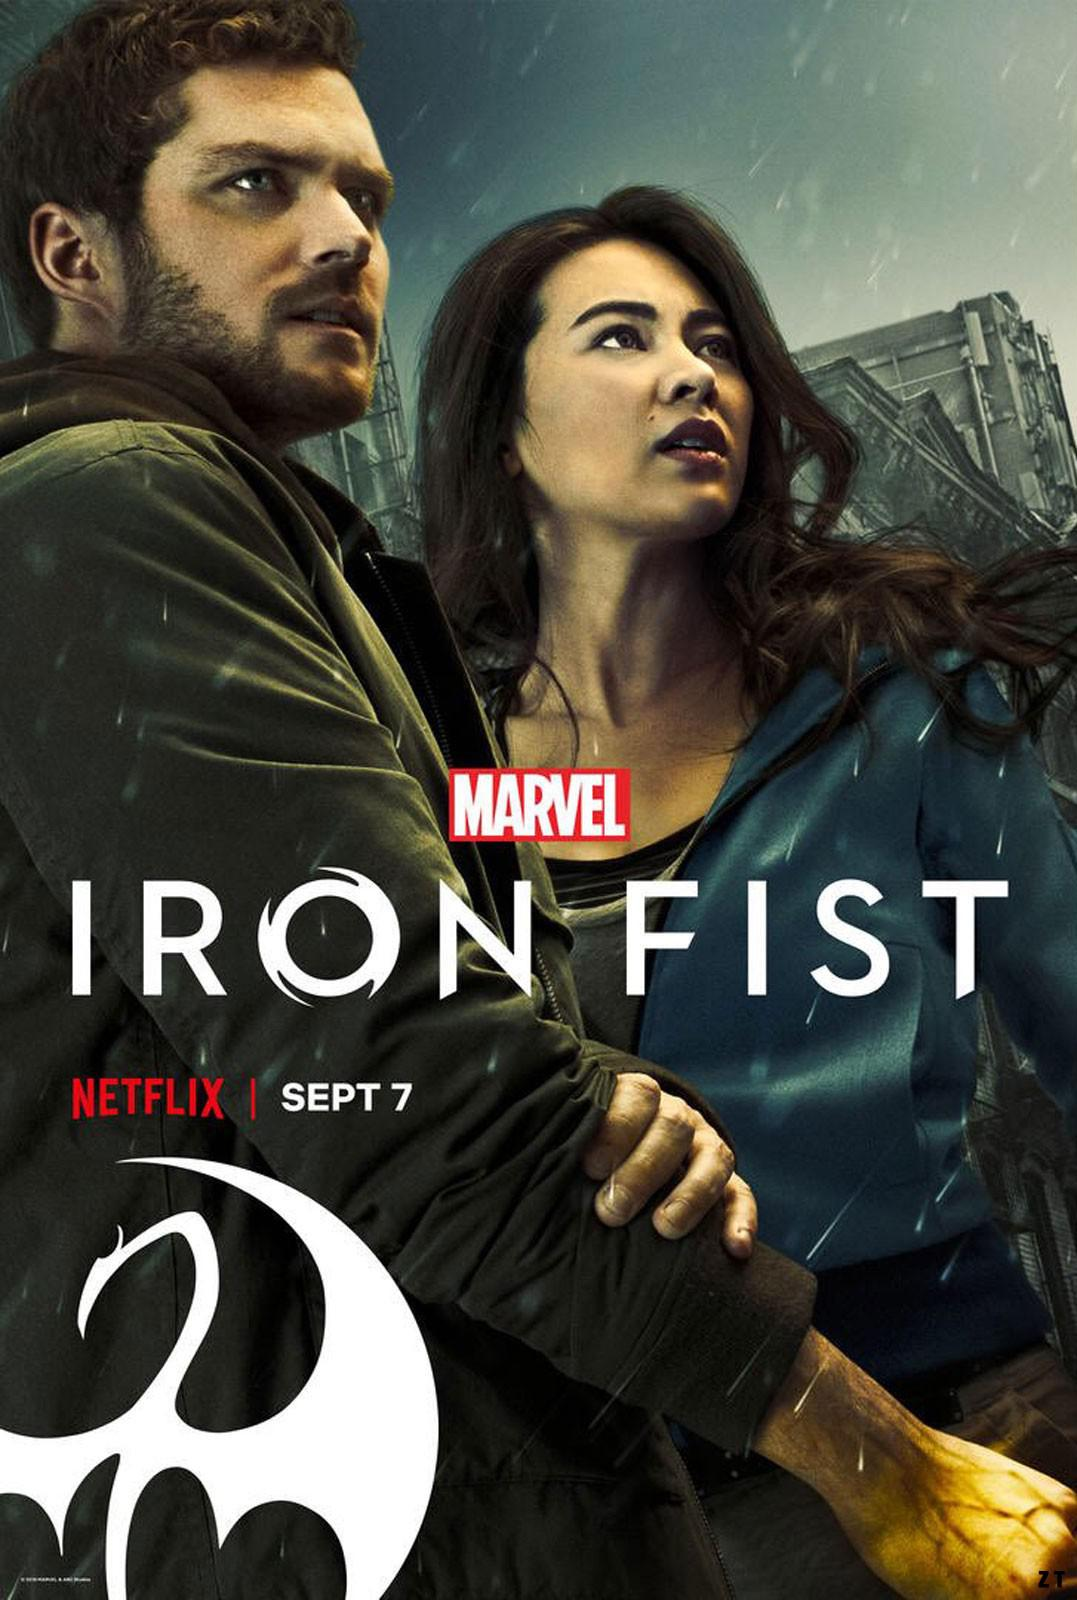 Telecharger Marvel's Iron Fist- Saison 2 [COMPLETE] [10/10] VOSTFR | Qualité Web-DL